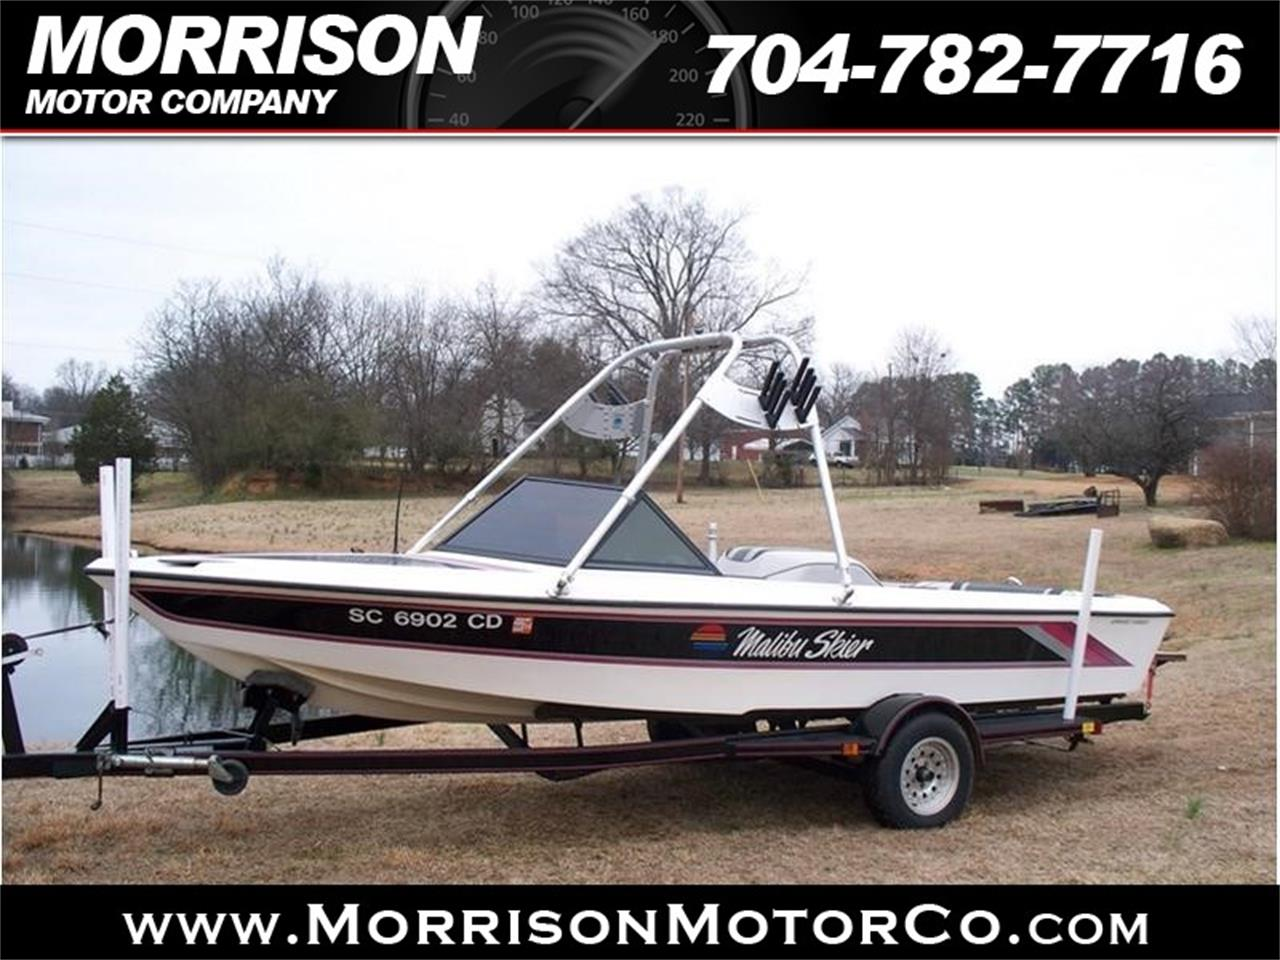 1991 Miscellaneous Boat for sale in Concord, NC